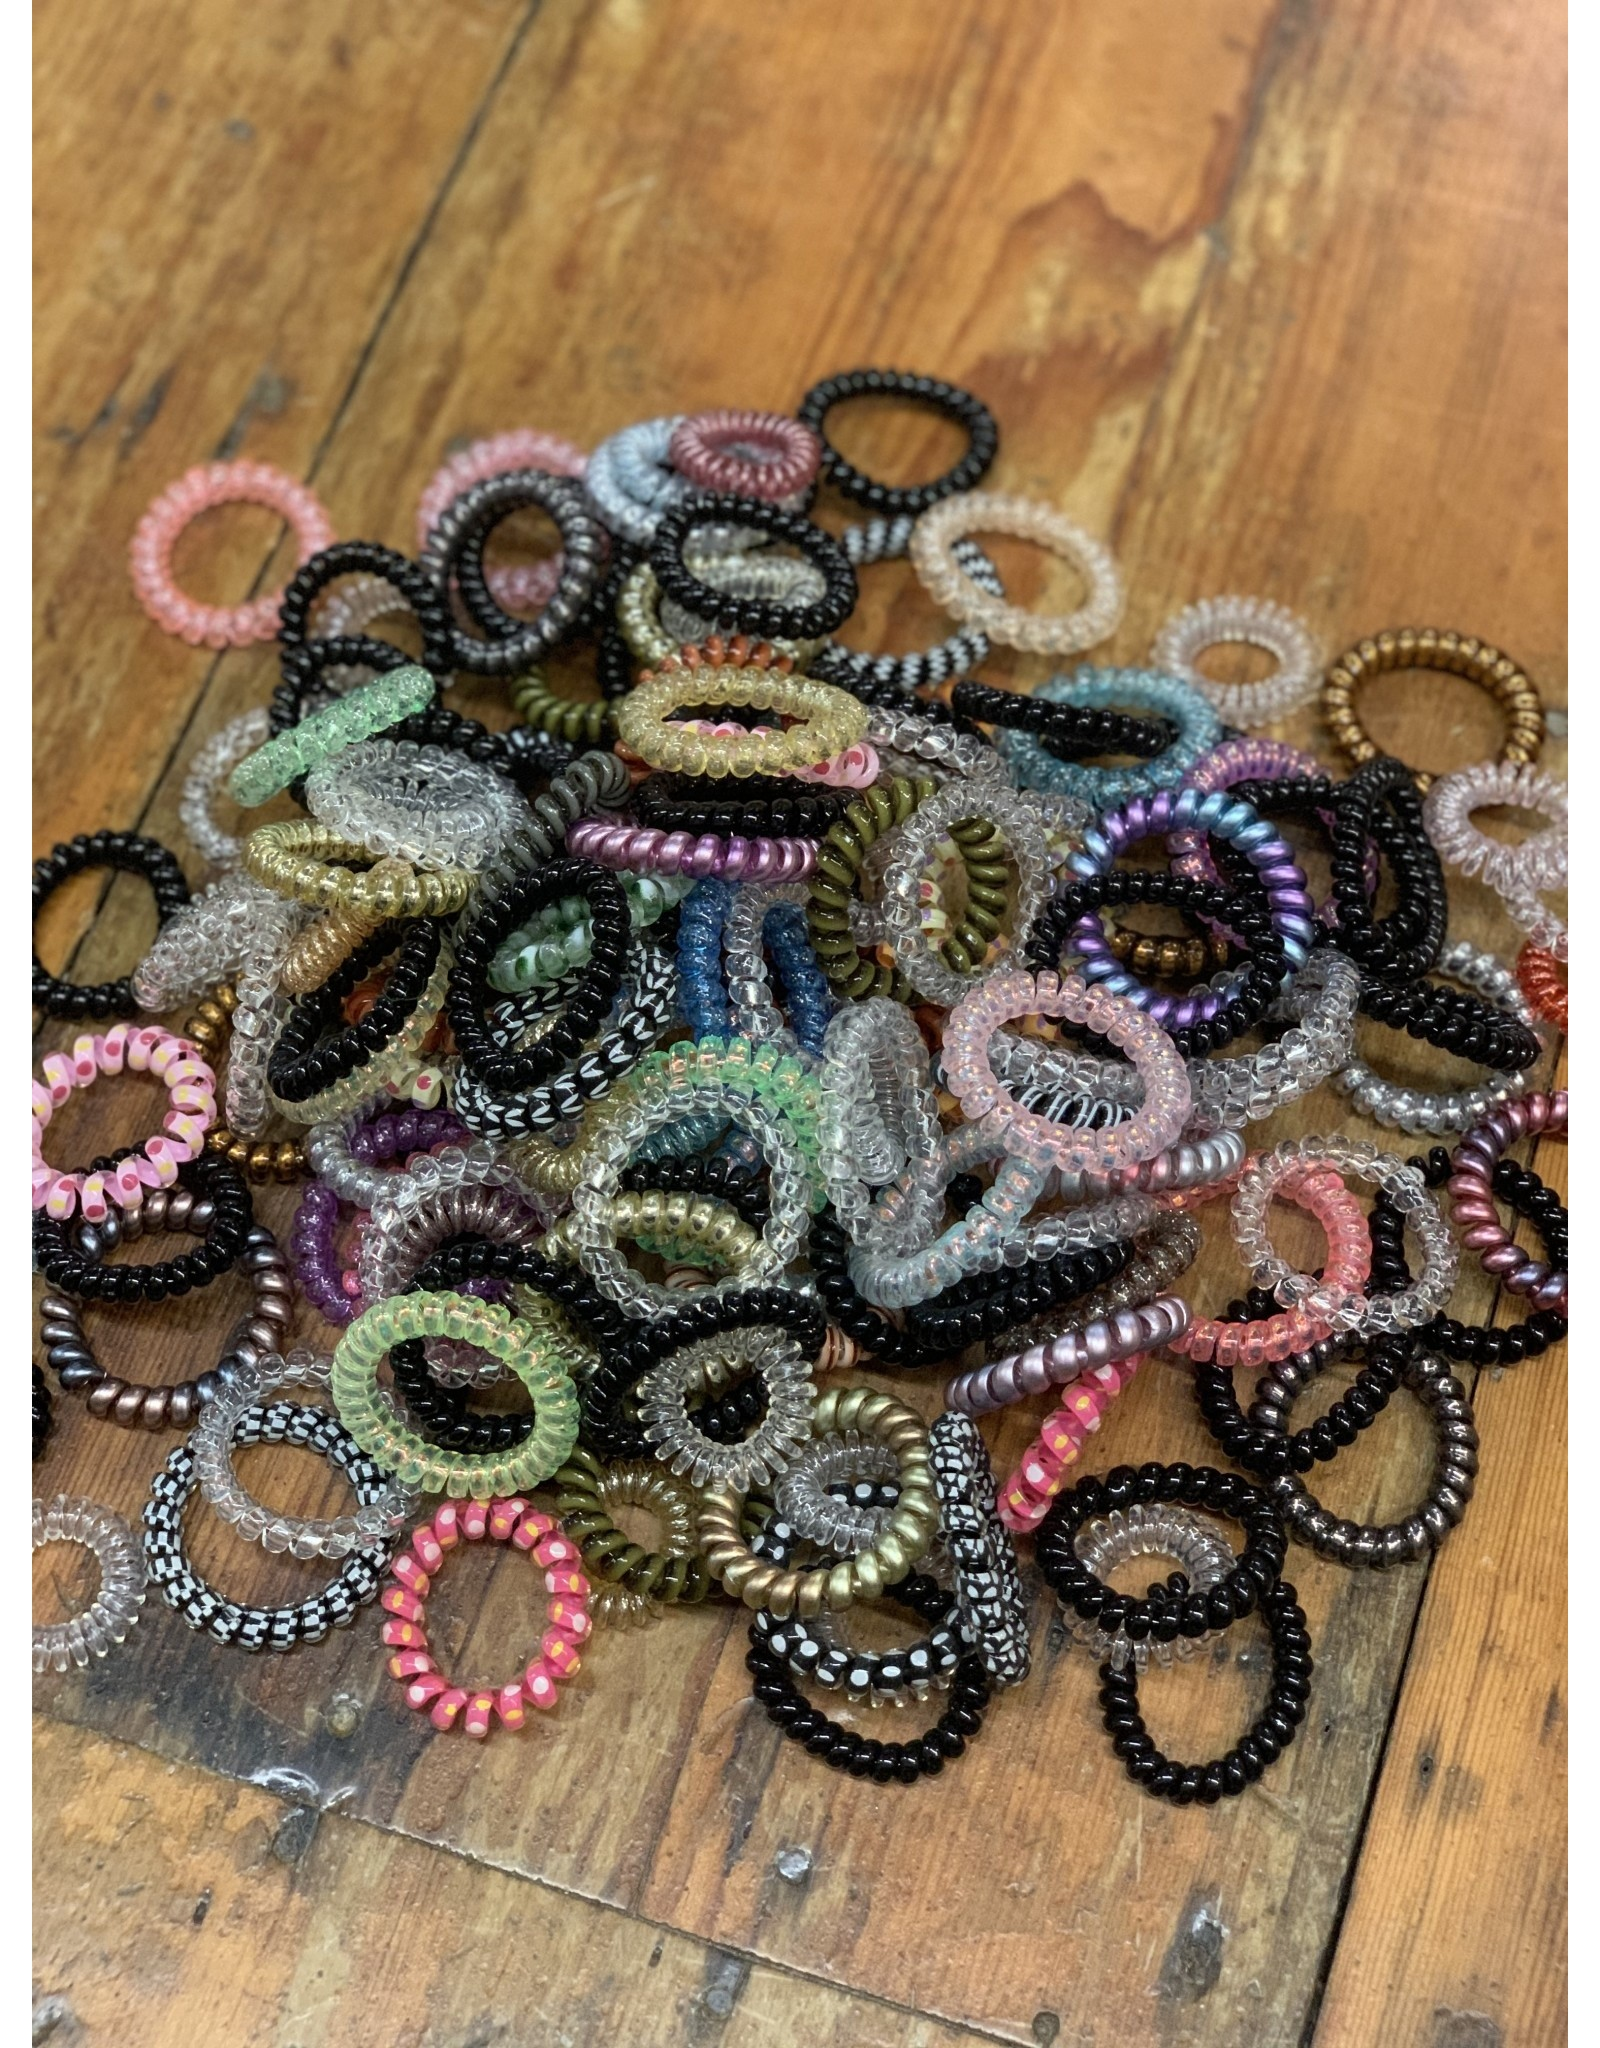 PACK OF 5 MYSTERY COIL HAIRTIES!